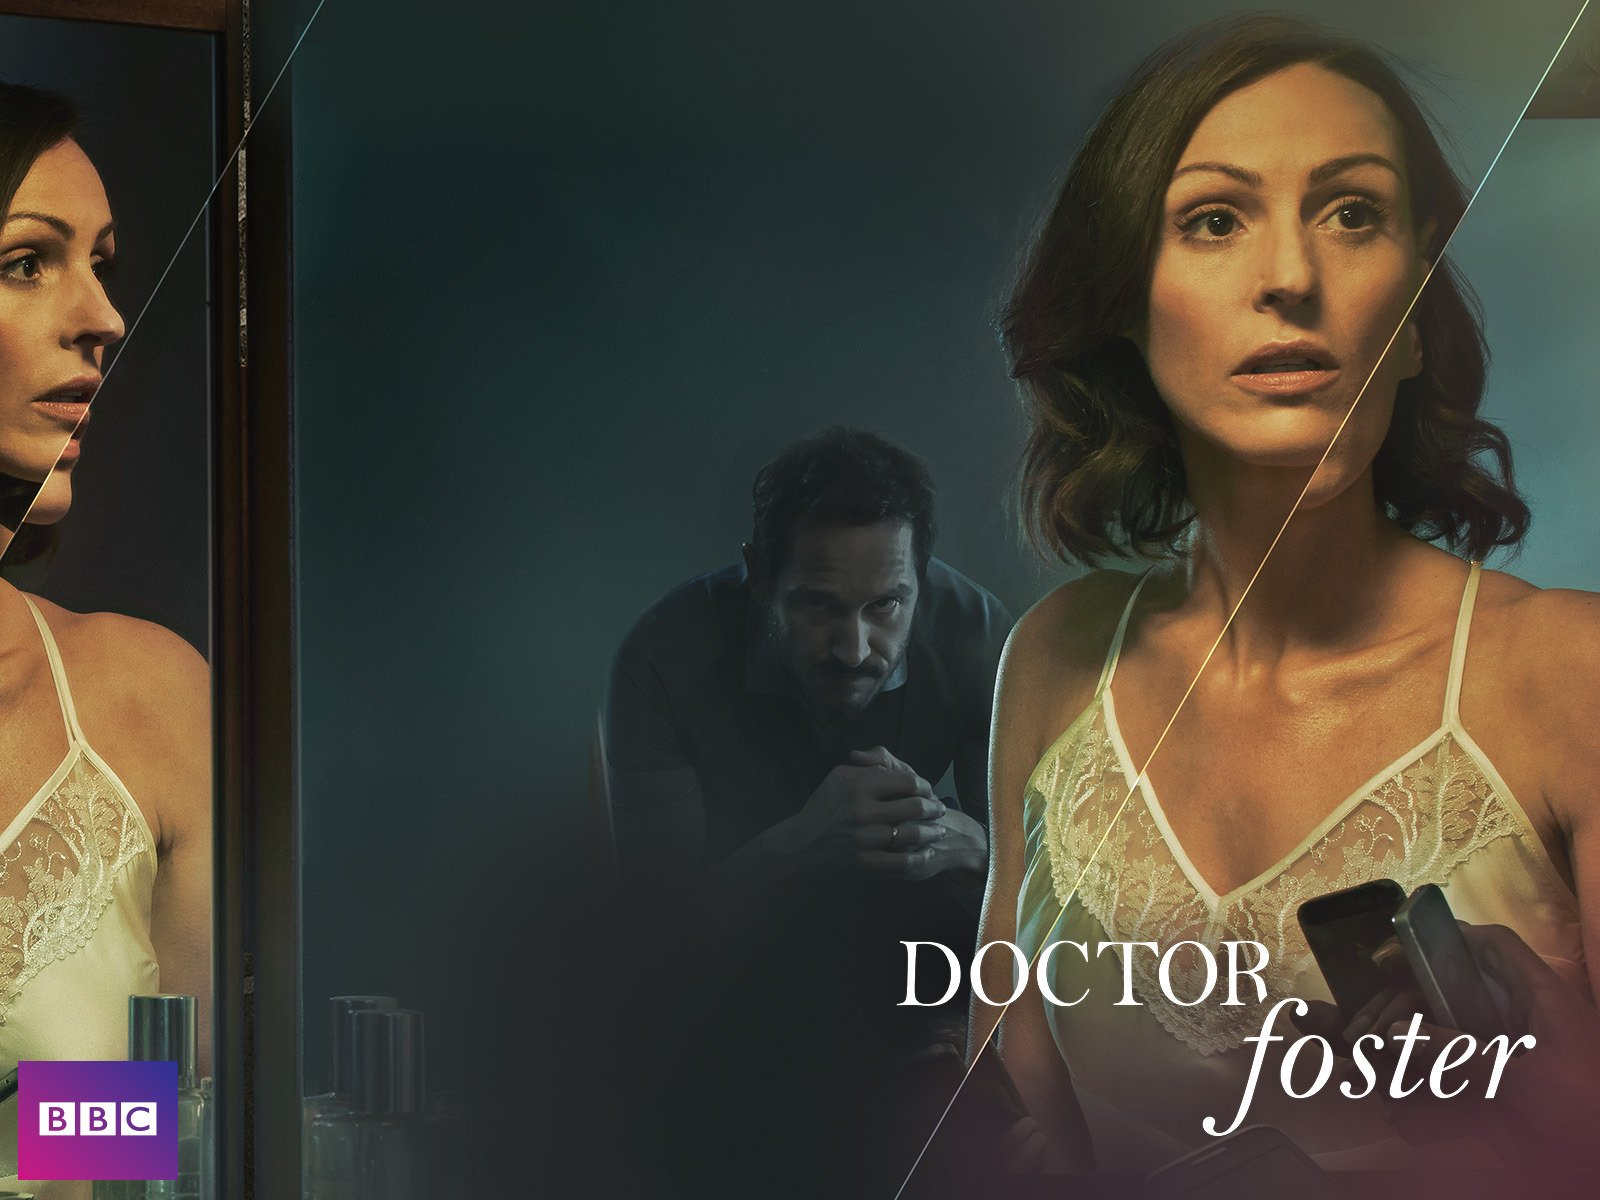 Doctor Foster is one of the most successful production in the world. (Amazon.co.uk)